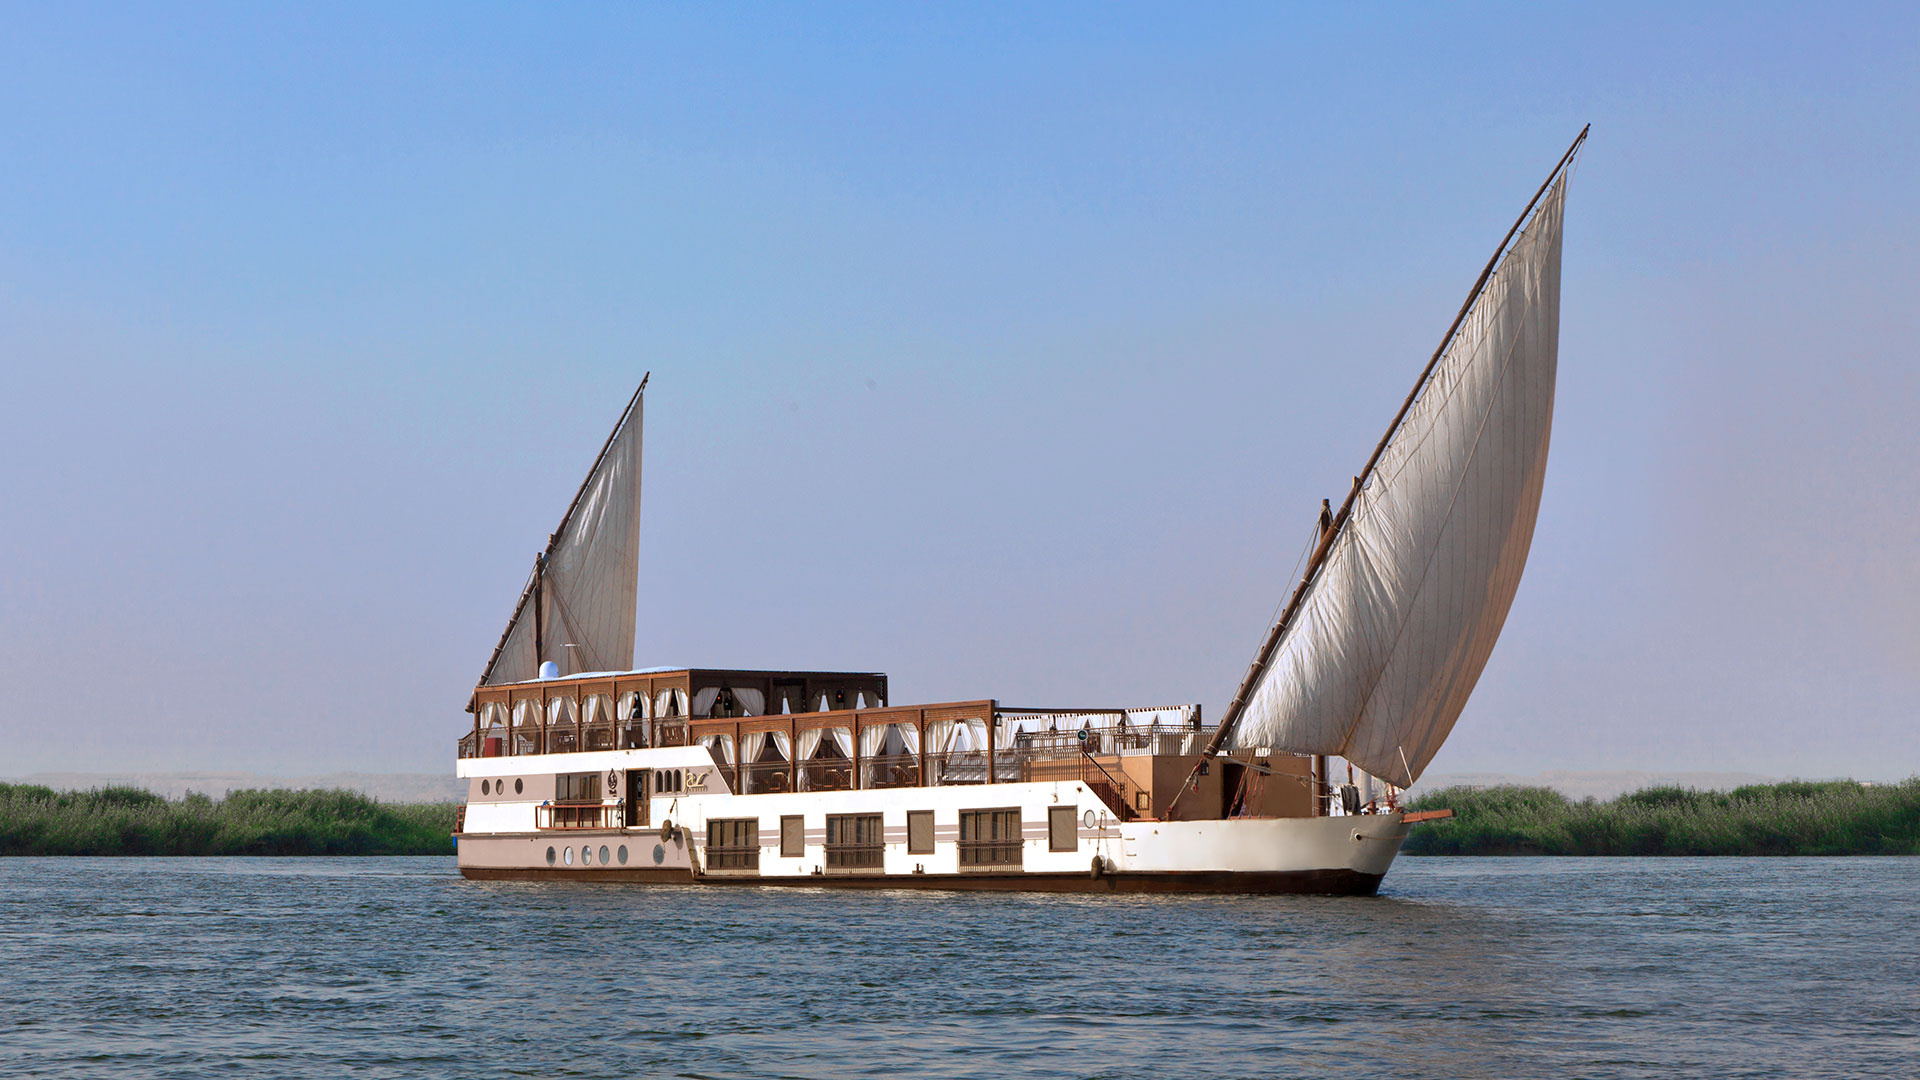 The Yakouta dahabeya cruising the Nile River in Egypt